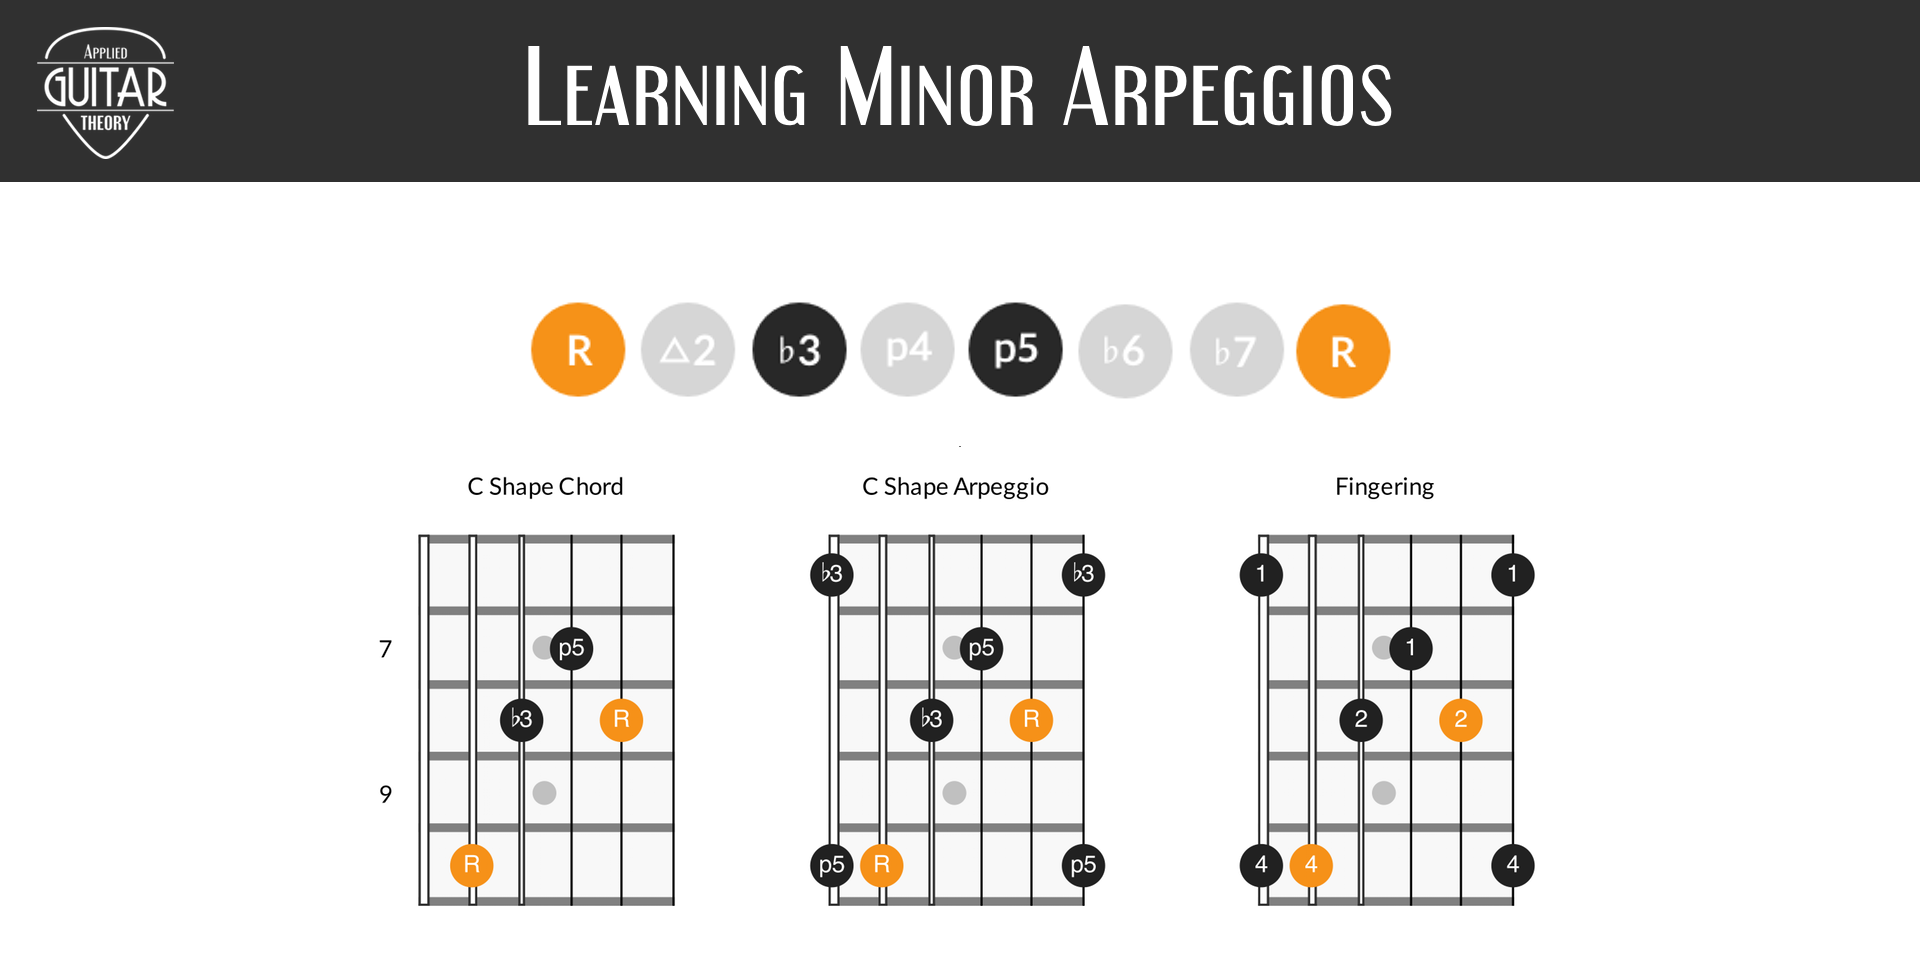 Learning minor arpeggios